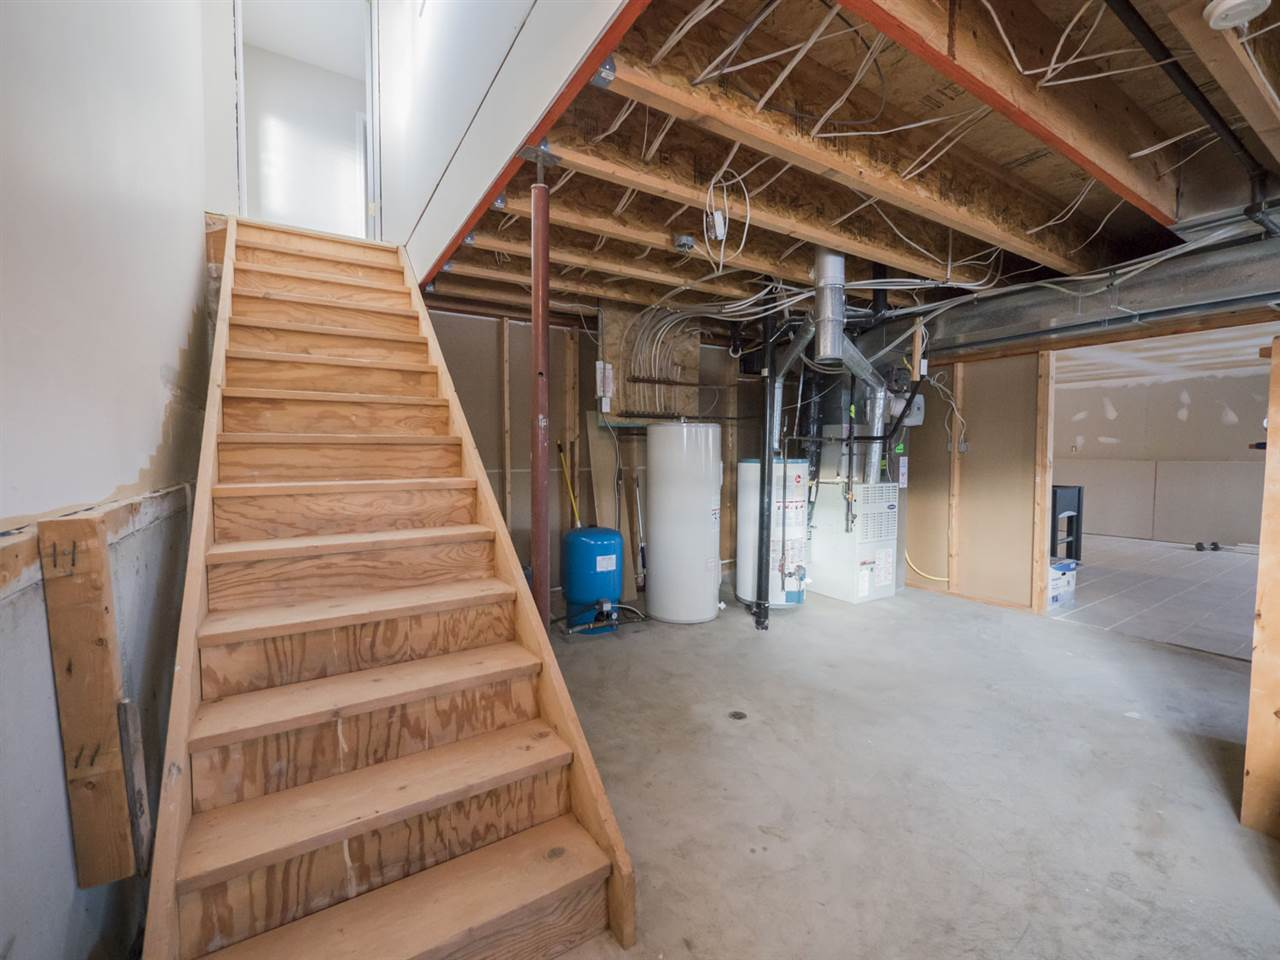 Staircase leading to the basement.